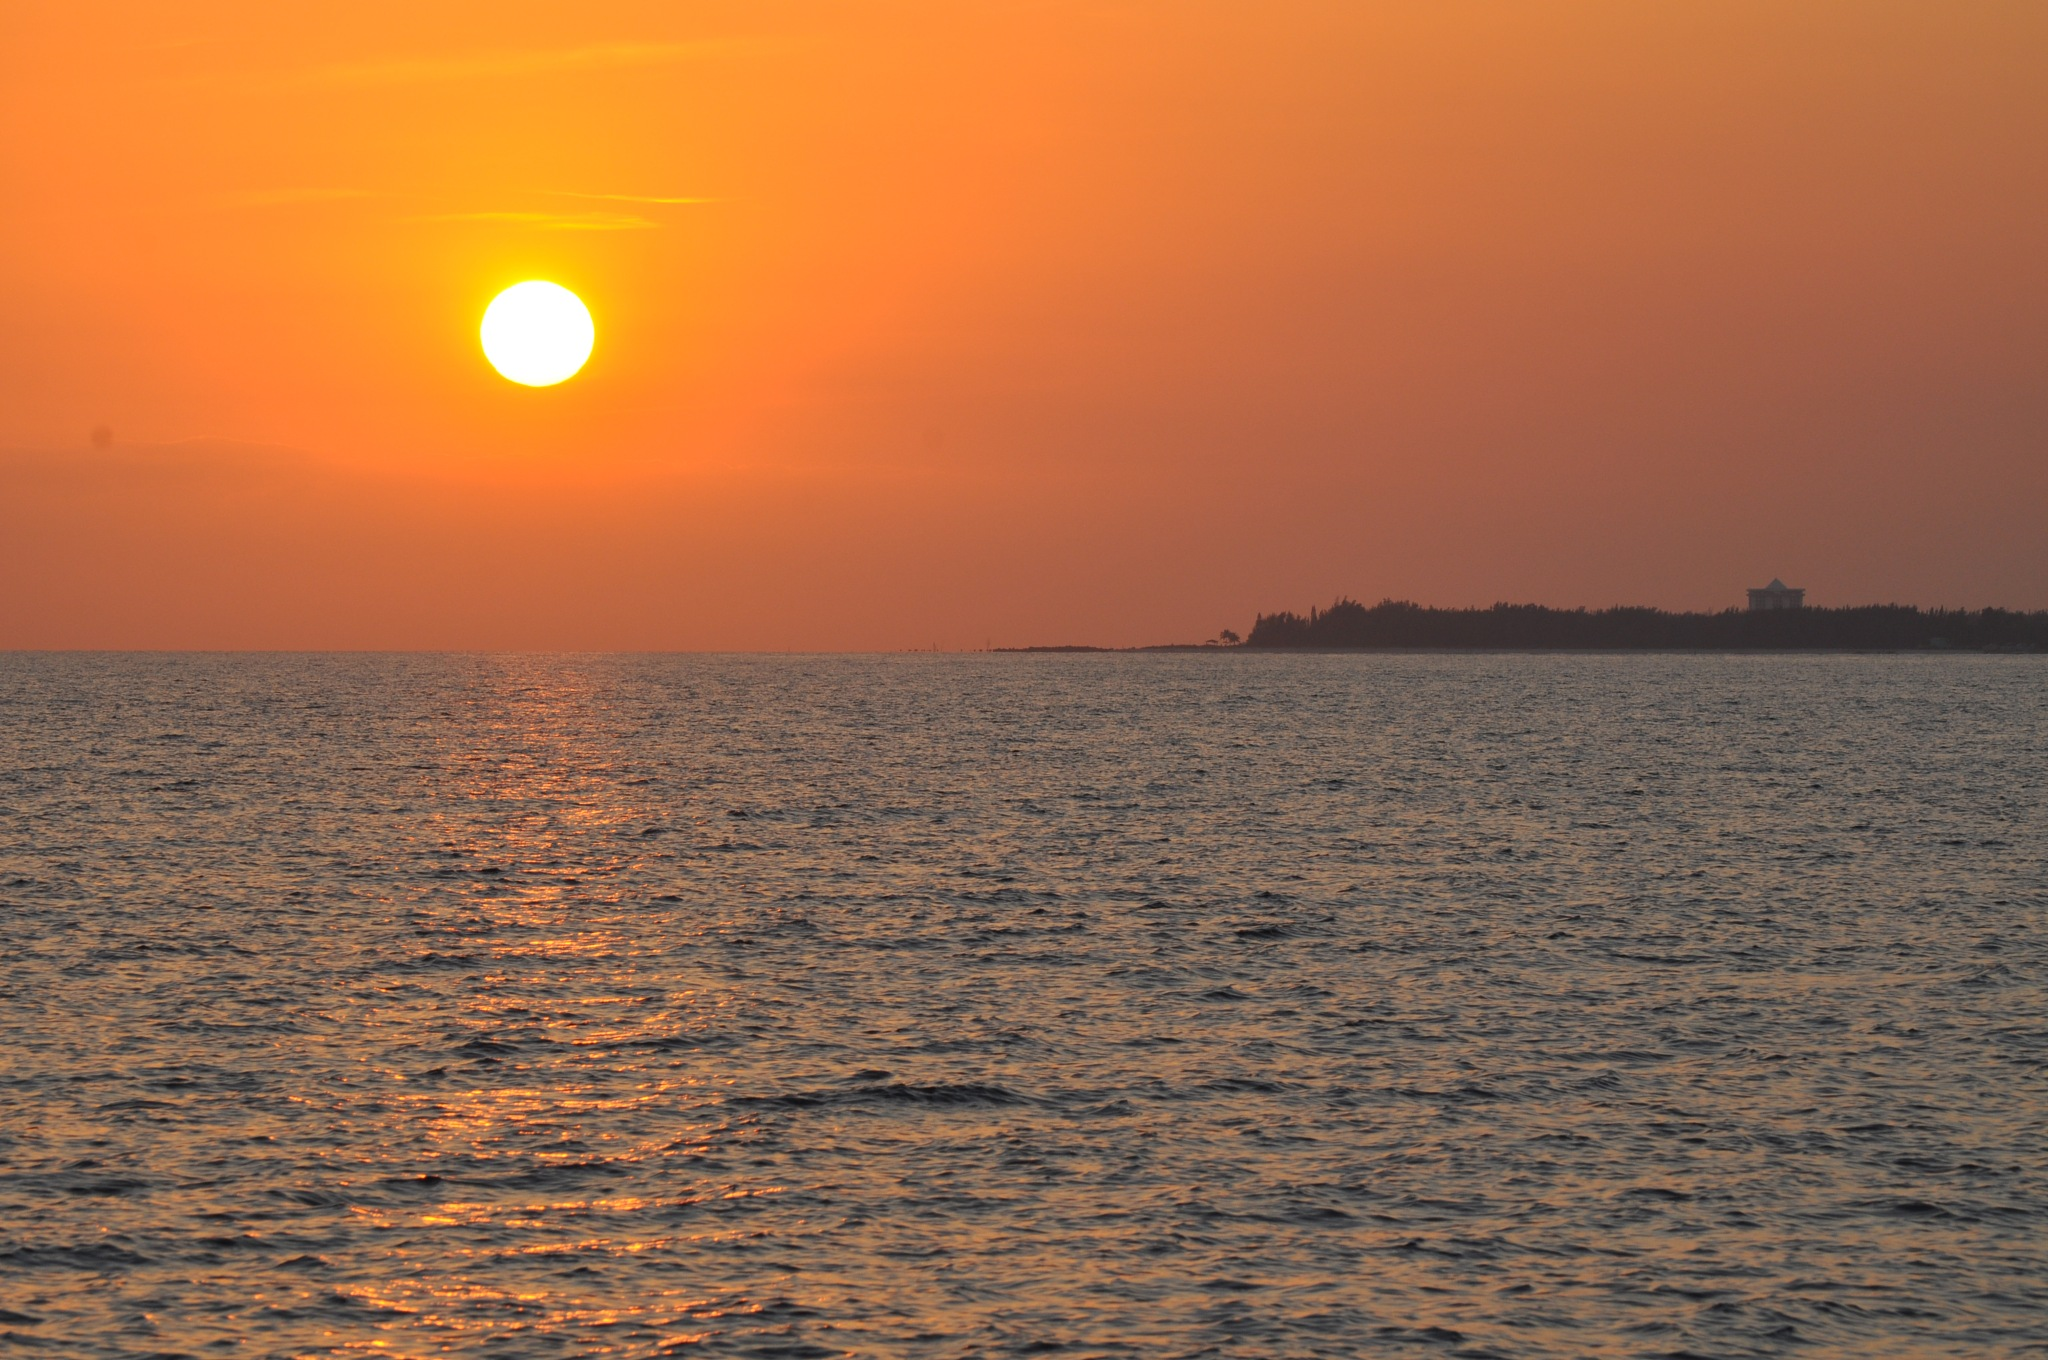 Sunset Over The Bahamas by peggy.hunt.378